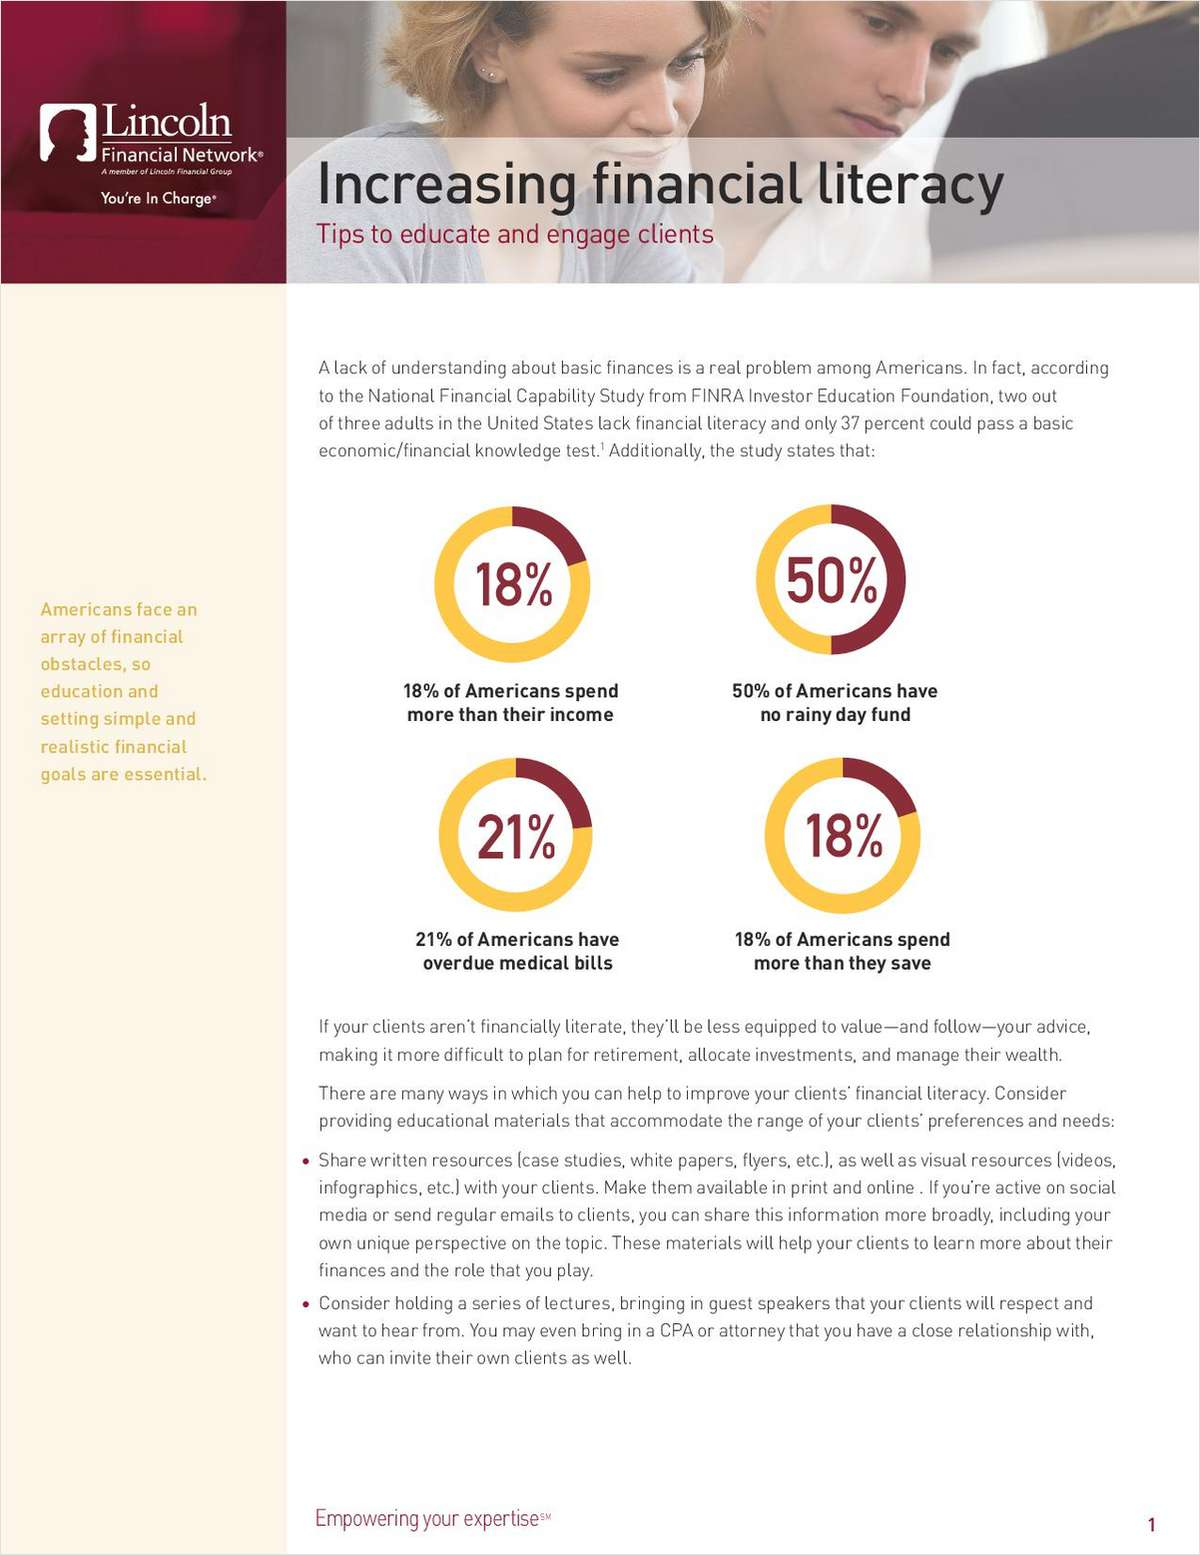 Increasing Financial Literacy: Tips to Educate and Engage Clients